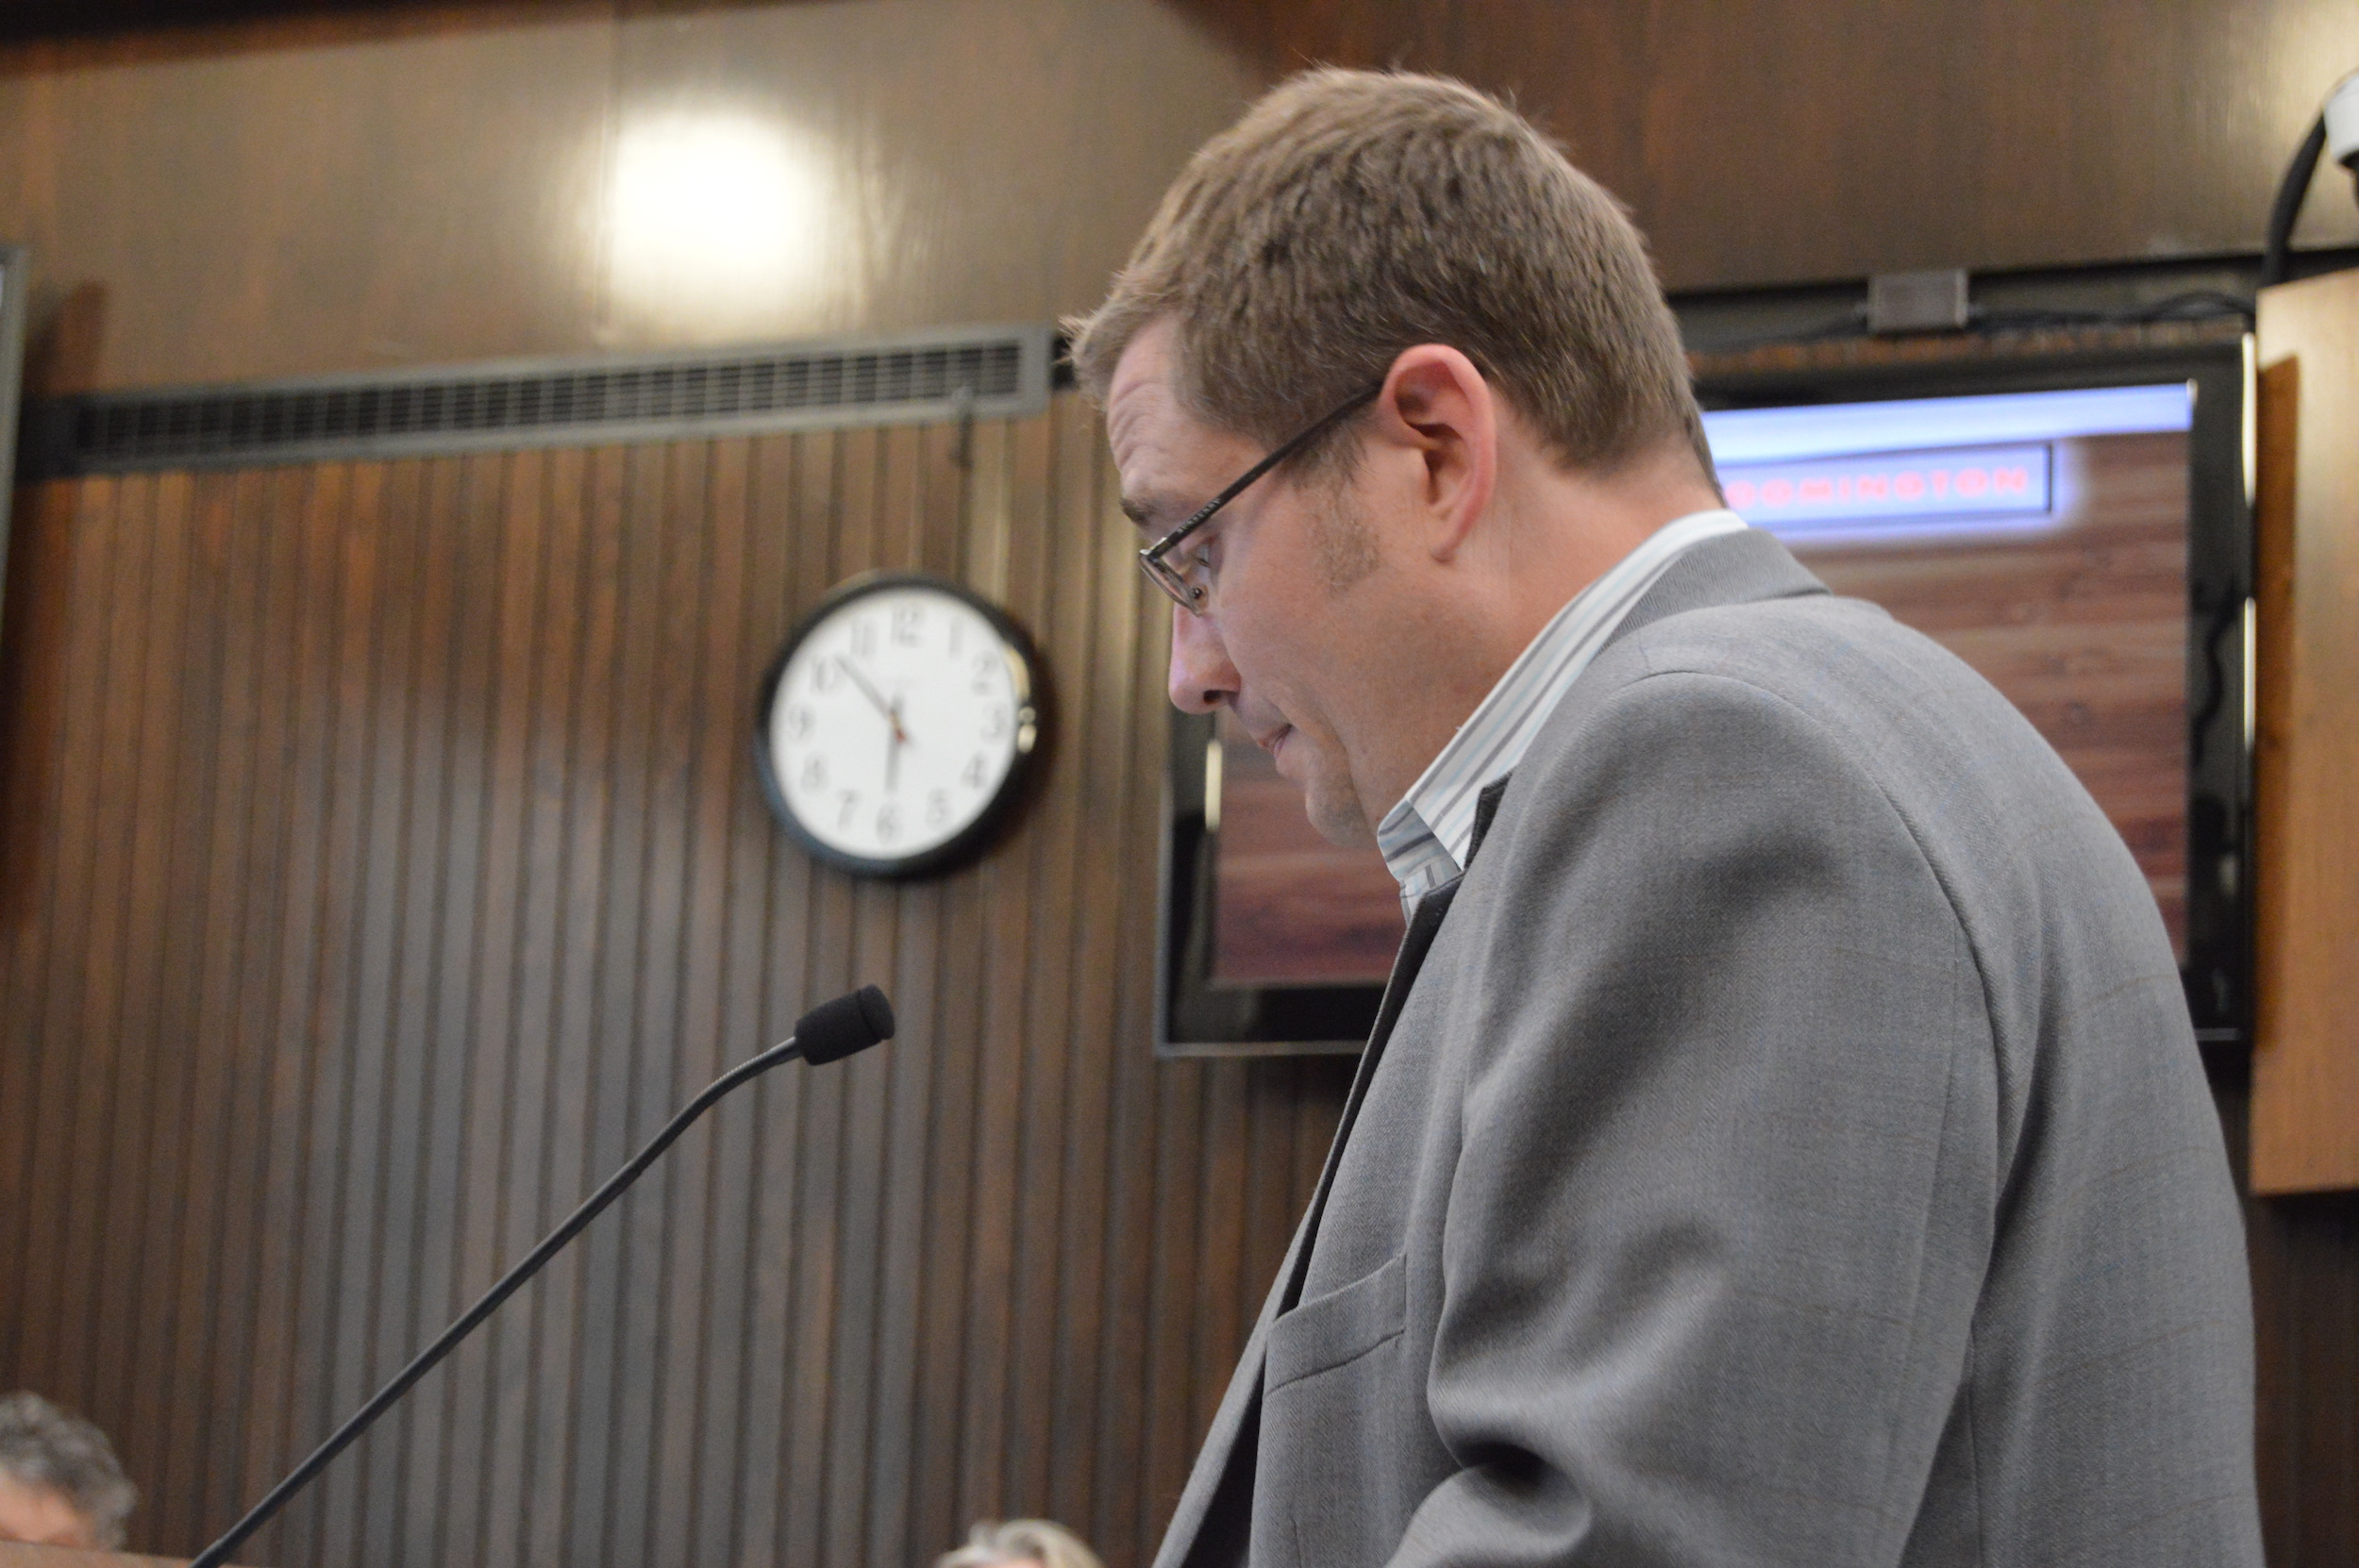 """Jeff Lindsay, an attorney for the Mizell family,spoke along with others against the City's distinction of """"non-lakefront lessees."""" Many of those residents now face court-ordered removal of their docks after a City Council vote Monday night. (Image credit: Breanna Grow)"""